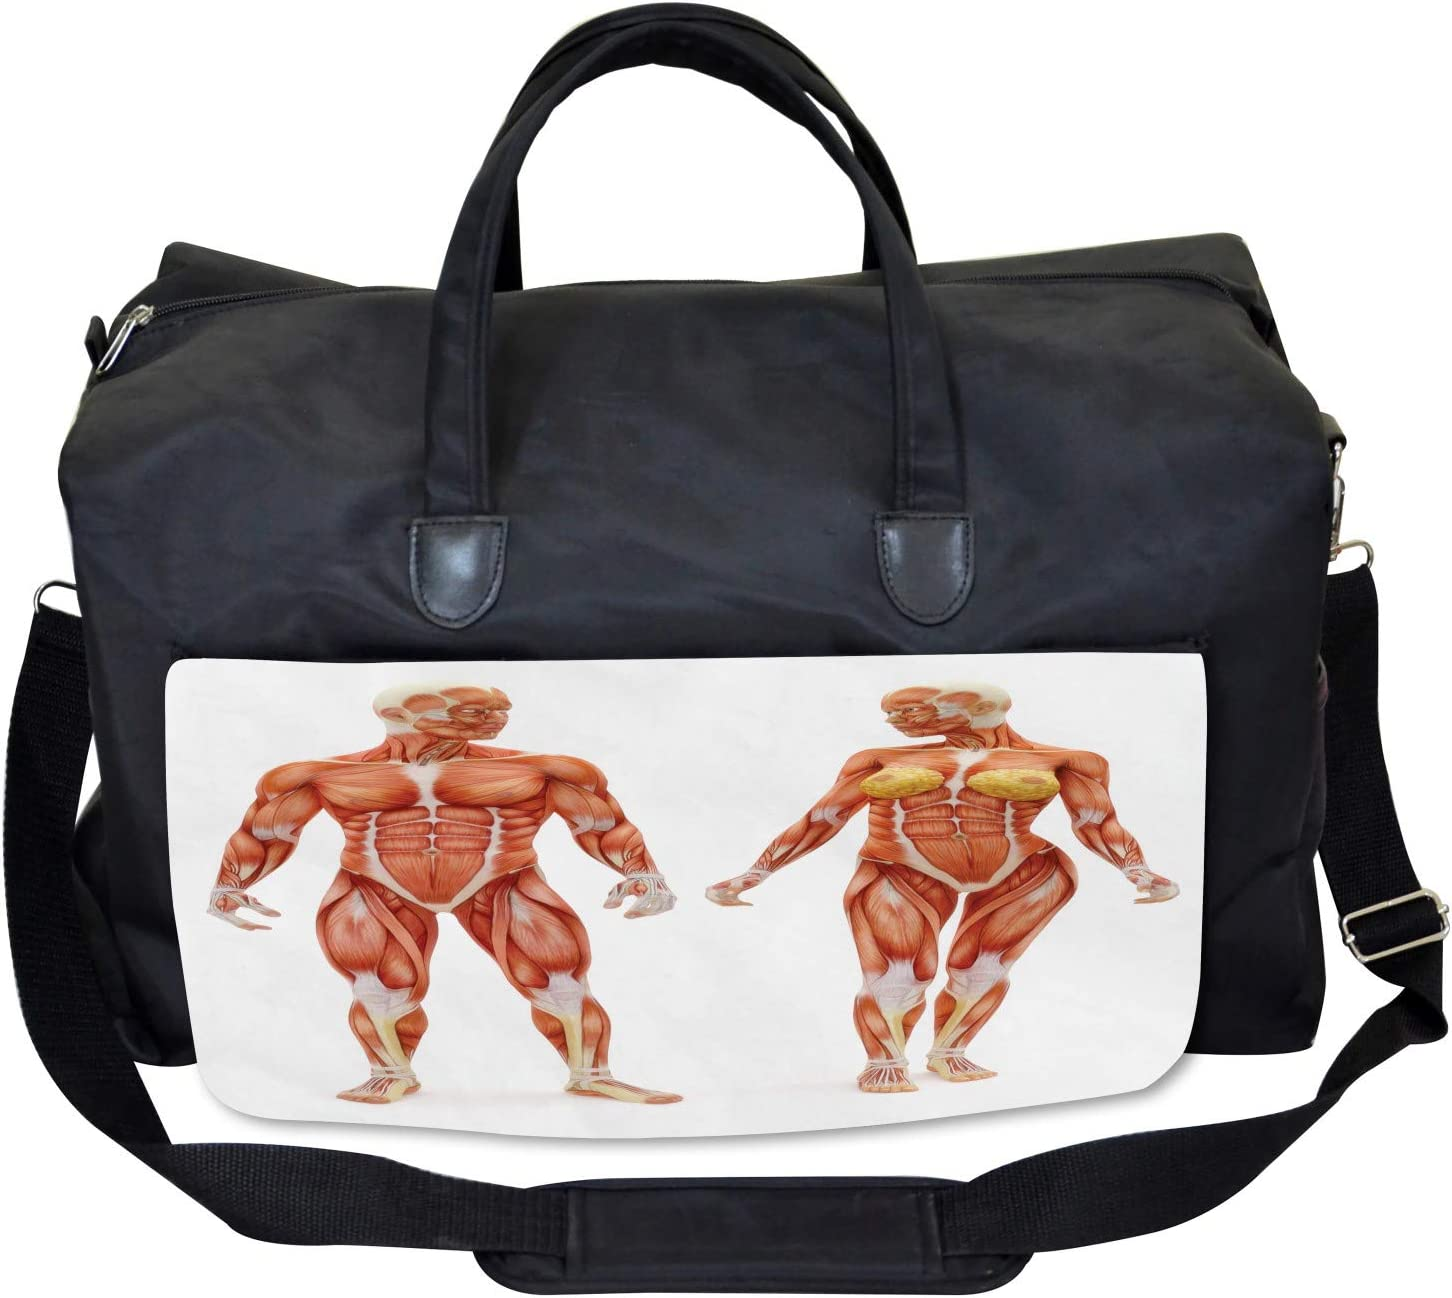 Male Human Body Large Weekender Carry-on Ambesonne Anatomy Gym Bag